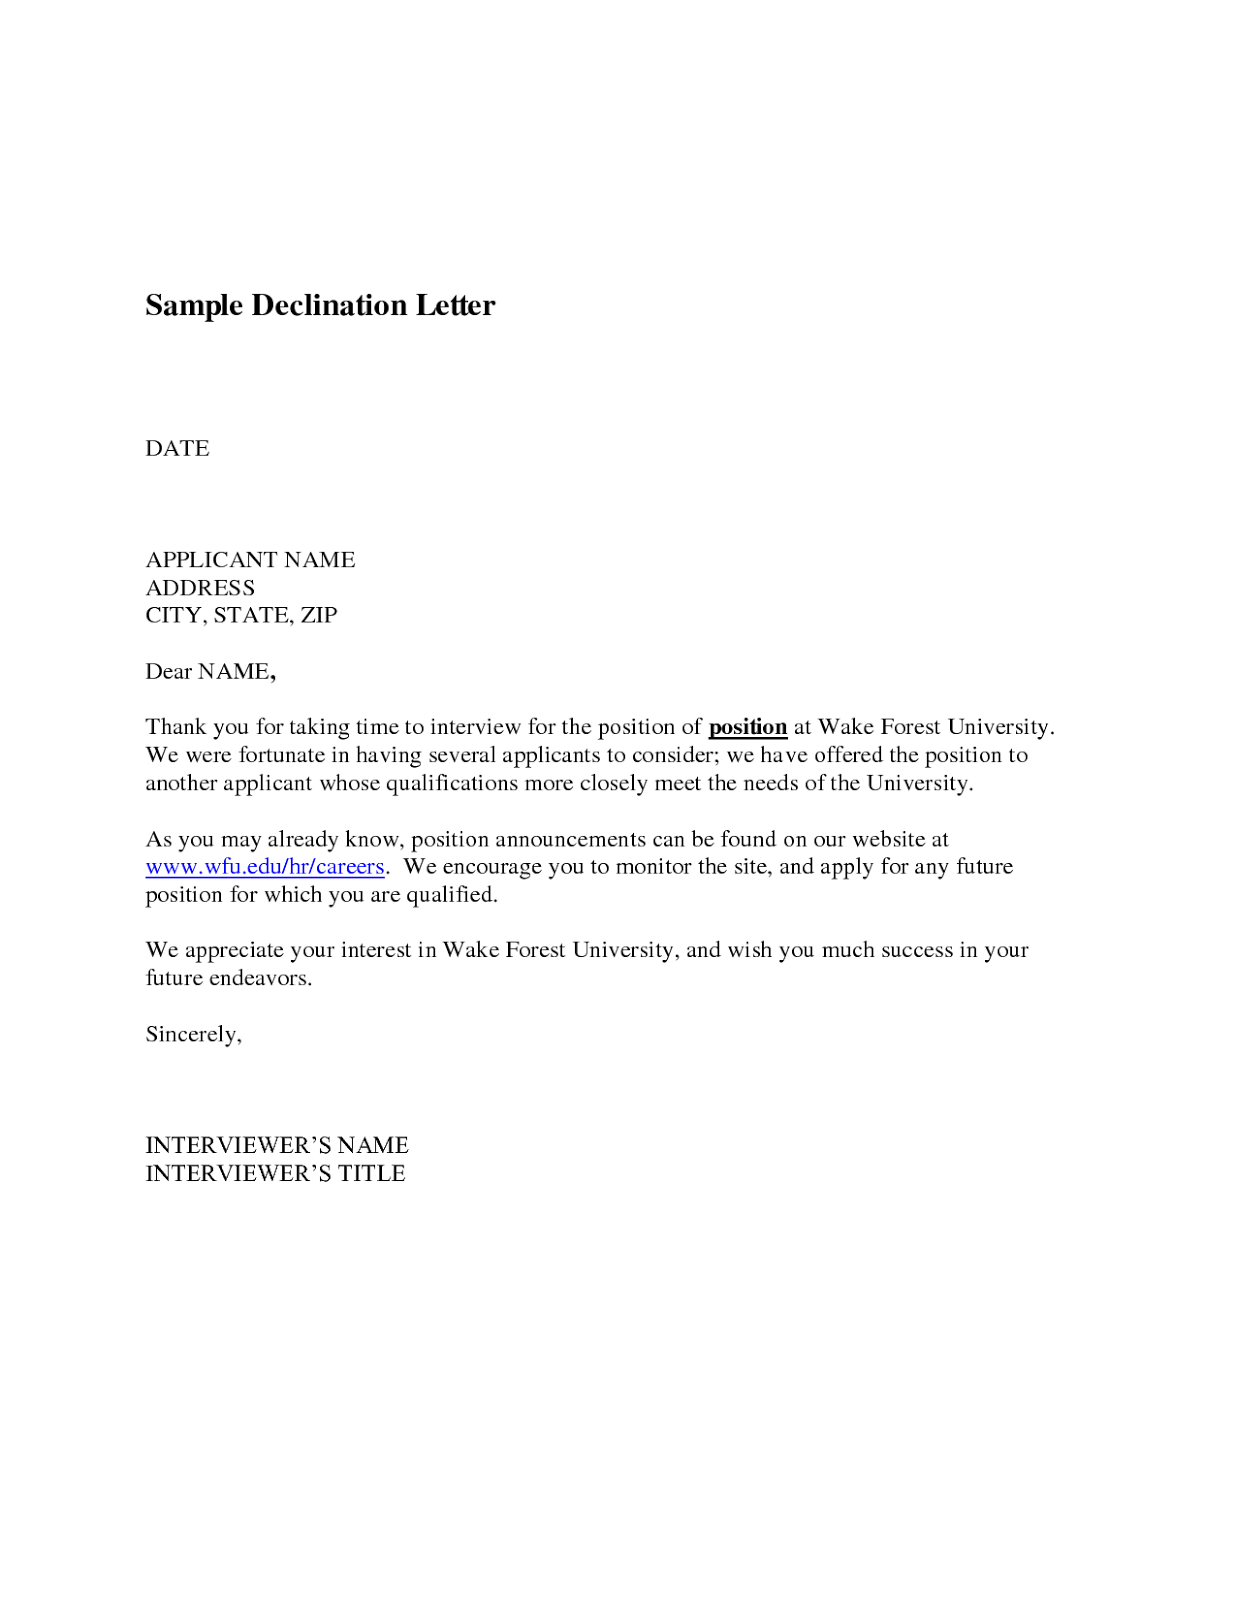 Quit Job Letter Cover Letter Letter Job Brilliant How To End A